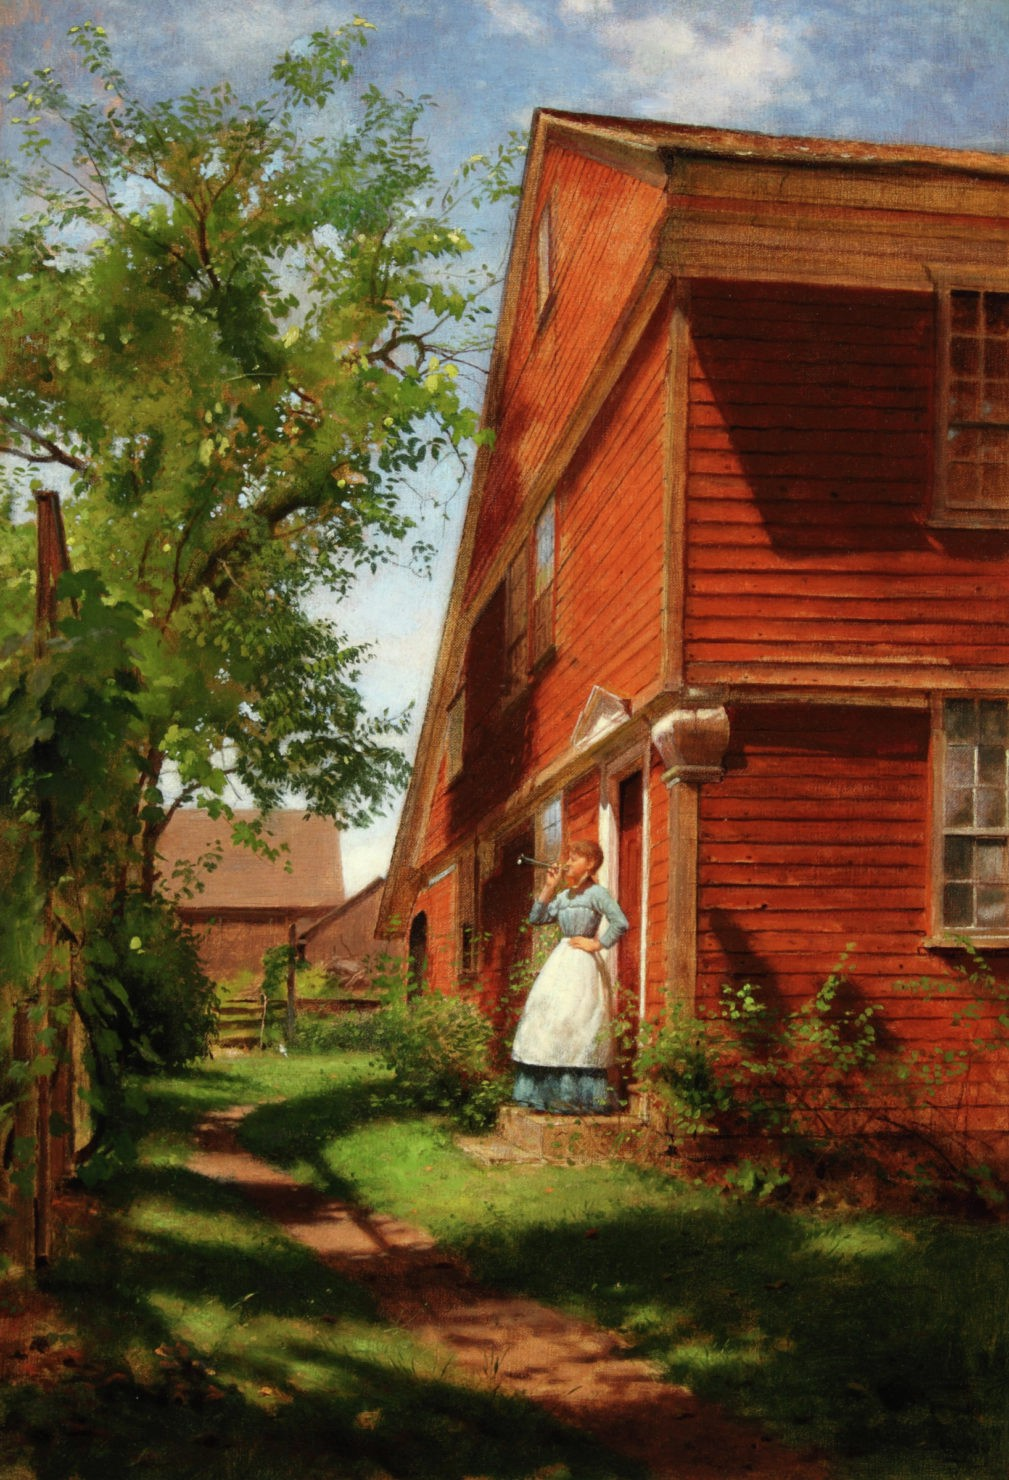 A woman in an apron stands with one hand on her hip and the other blowing a small horn as she stands by her red house on a sunny day.